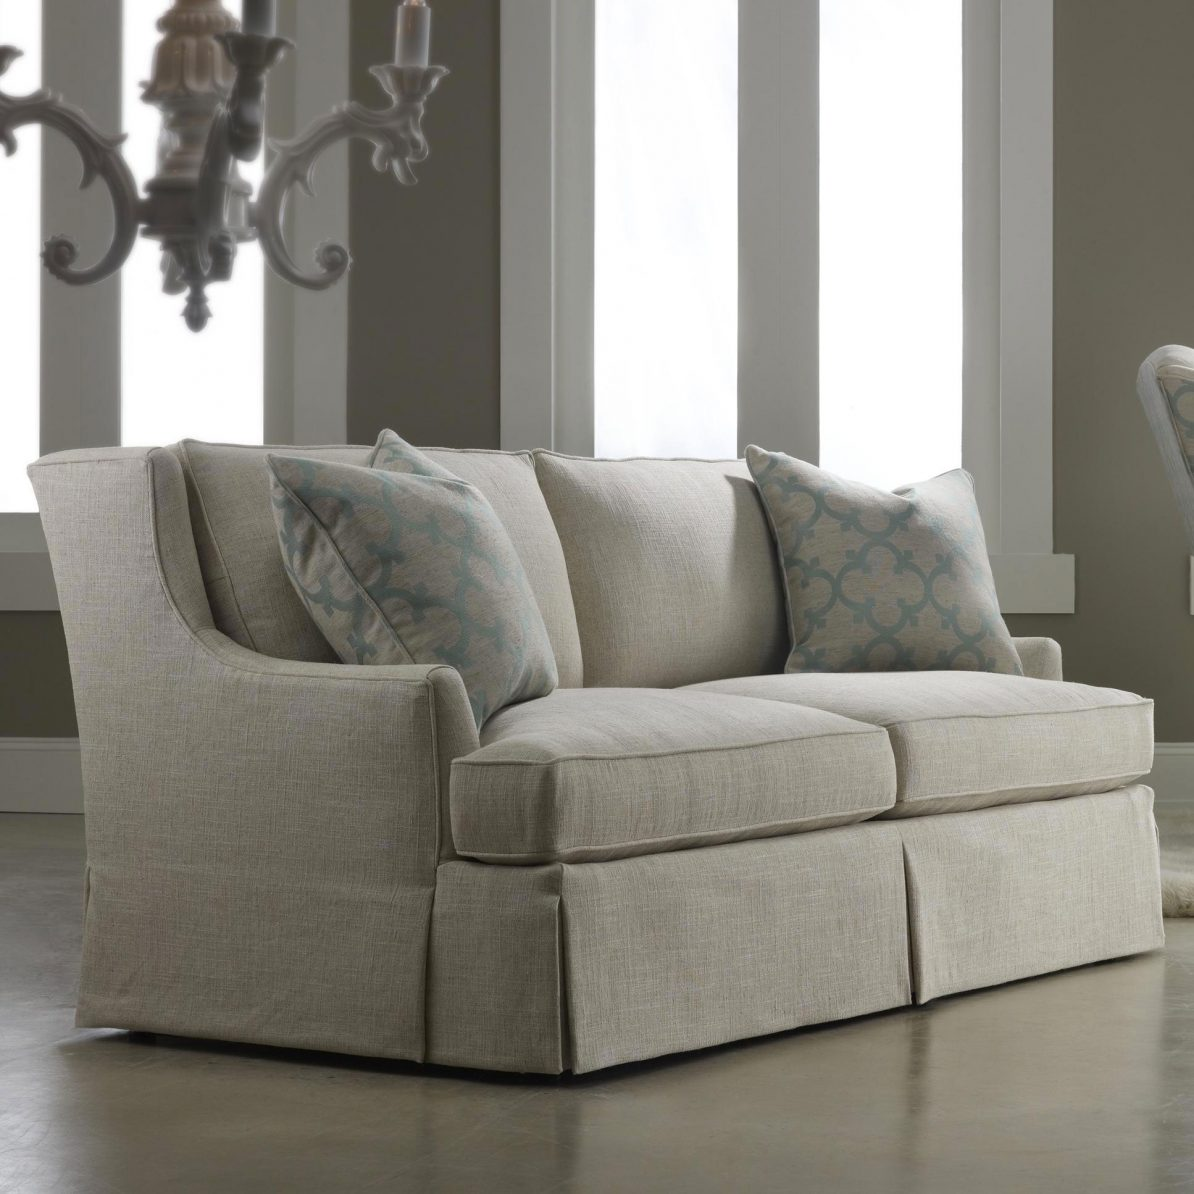 Charmant Frequently Asked Questions: Sofa Skirts